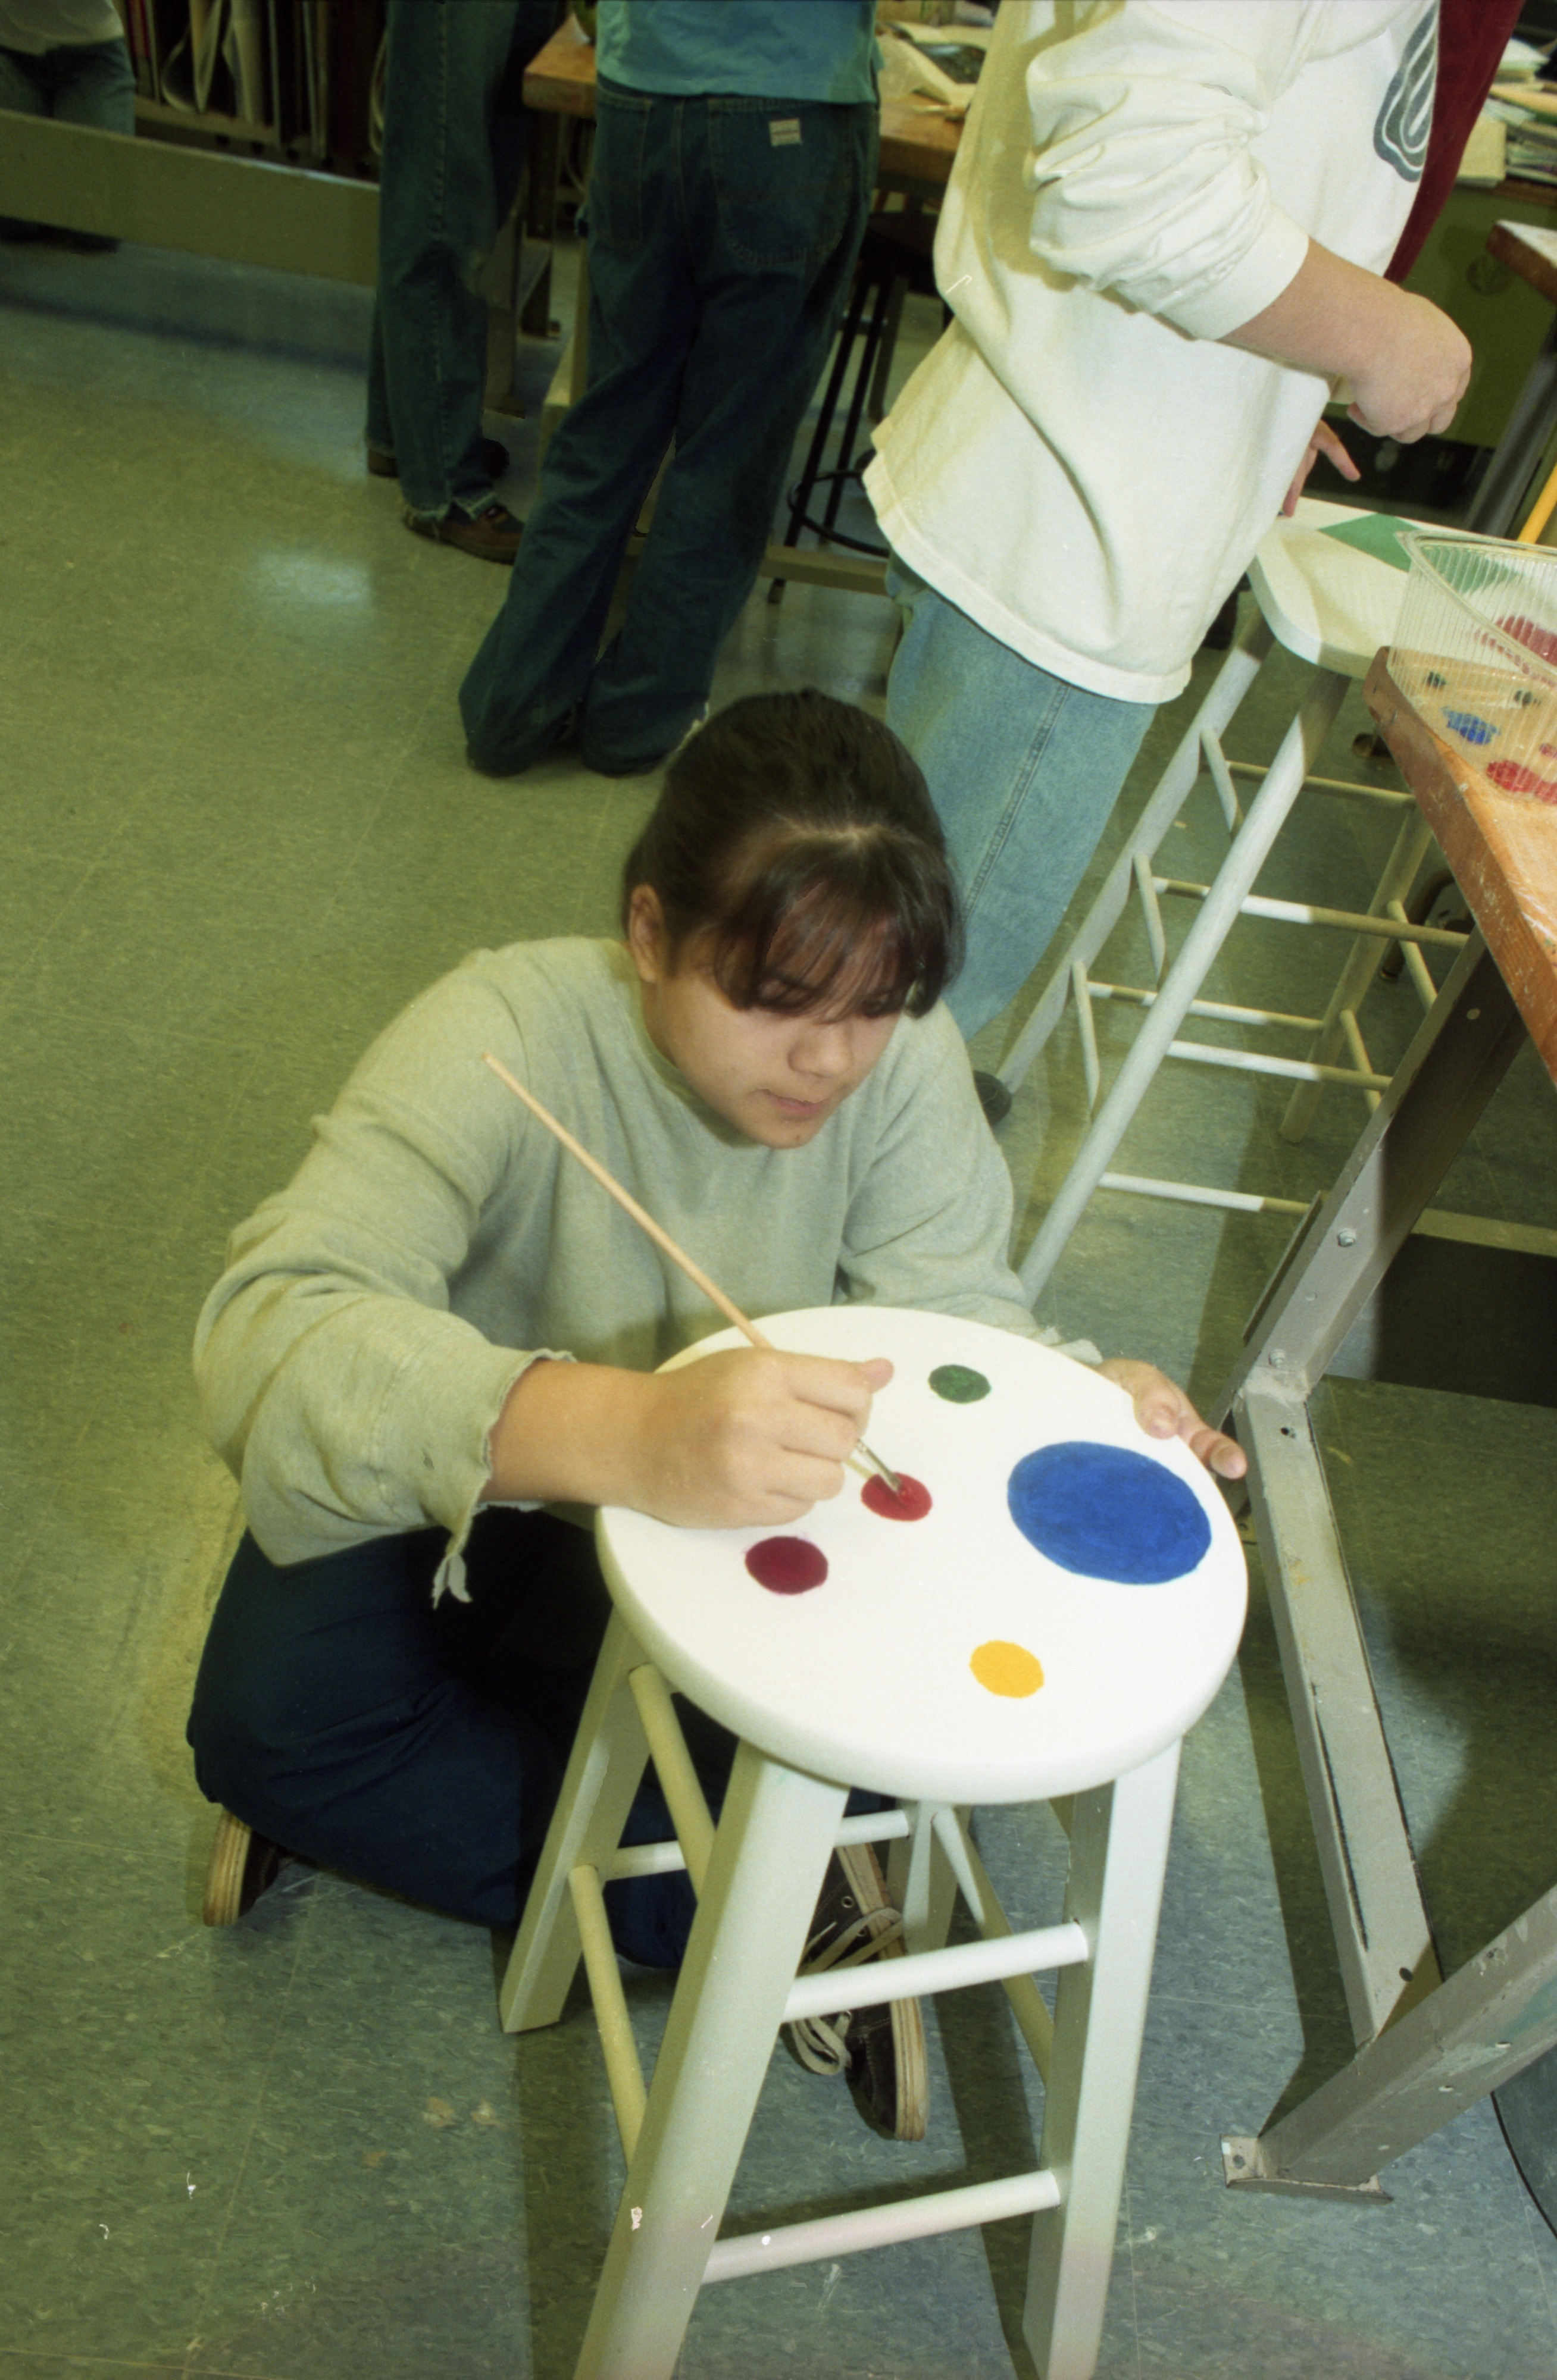 Student Paints A Stool For Greenhills' Fundraiser, February 19, 1997 image